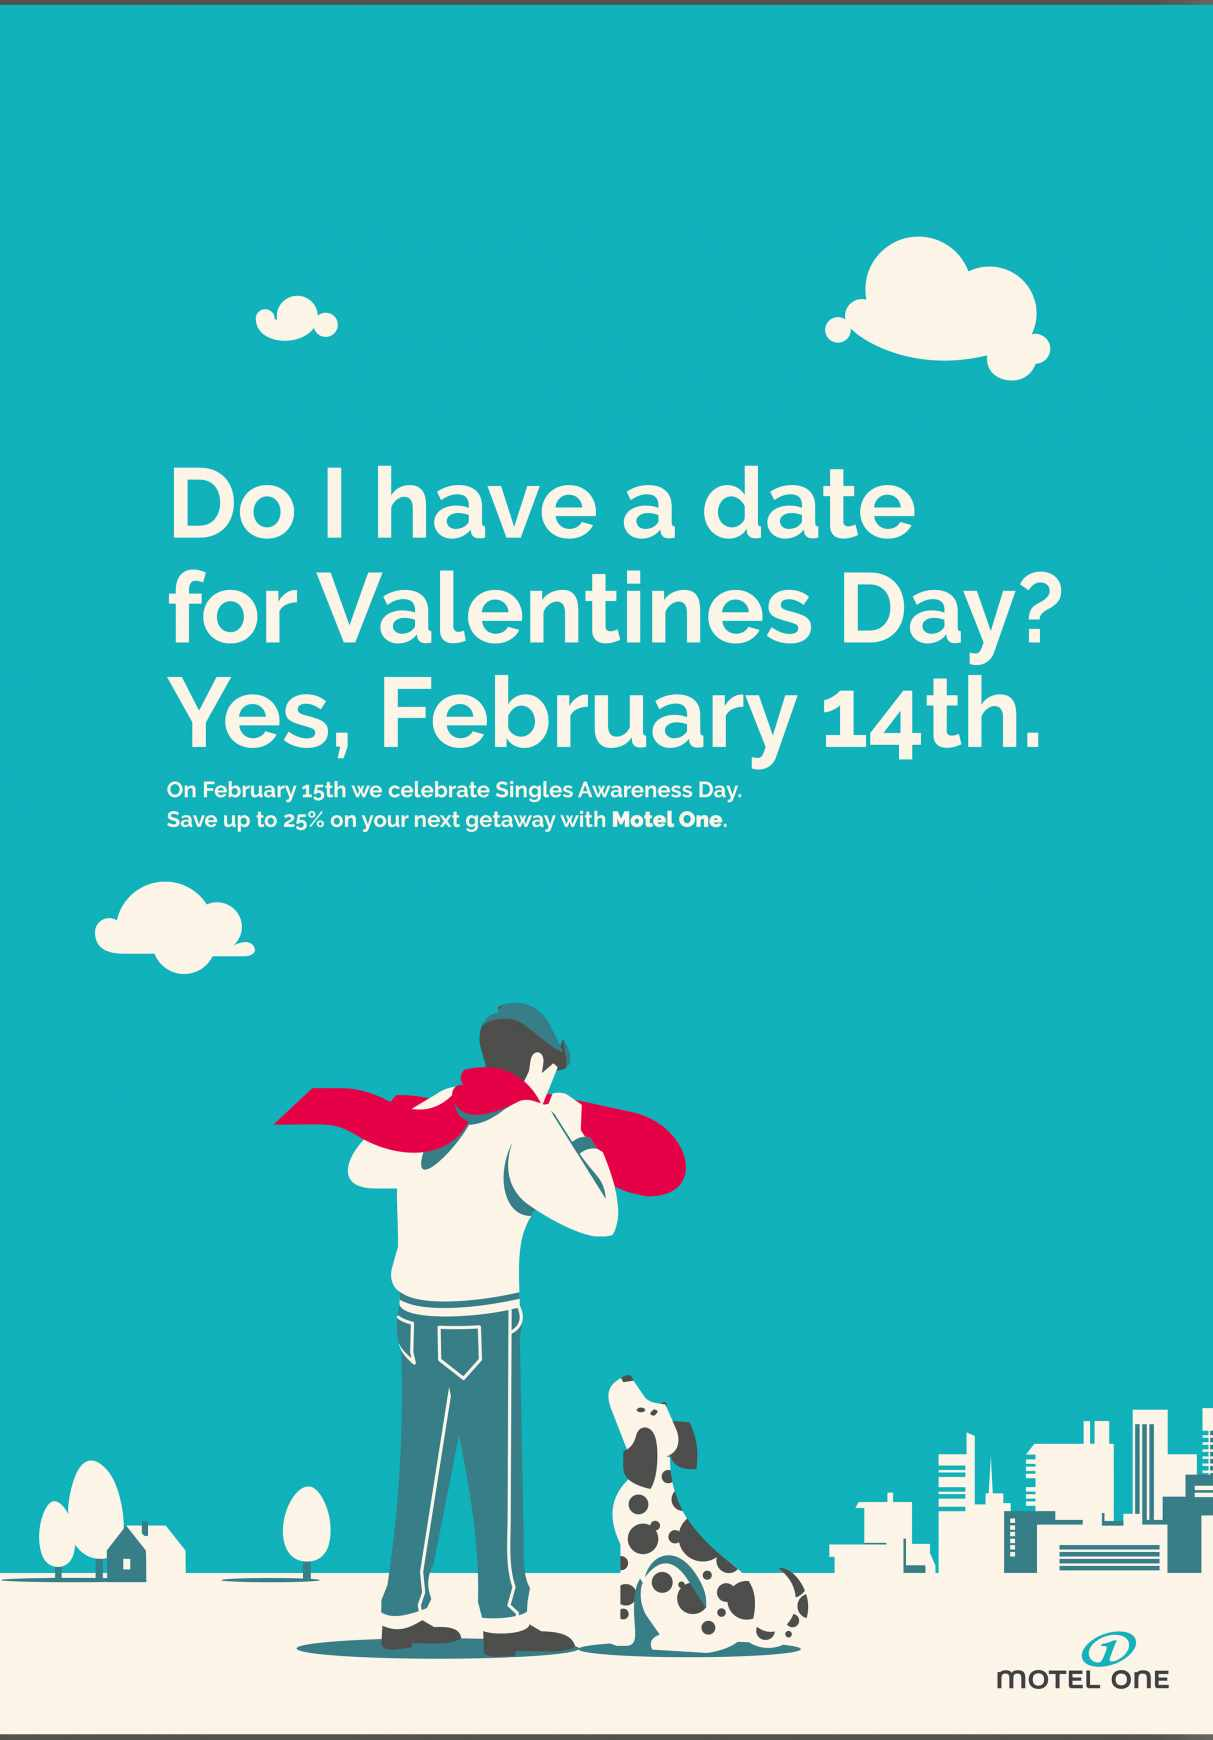 Motel One Print Ad - Singles Awareness Day, 3